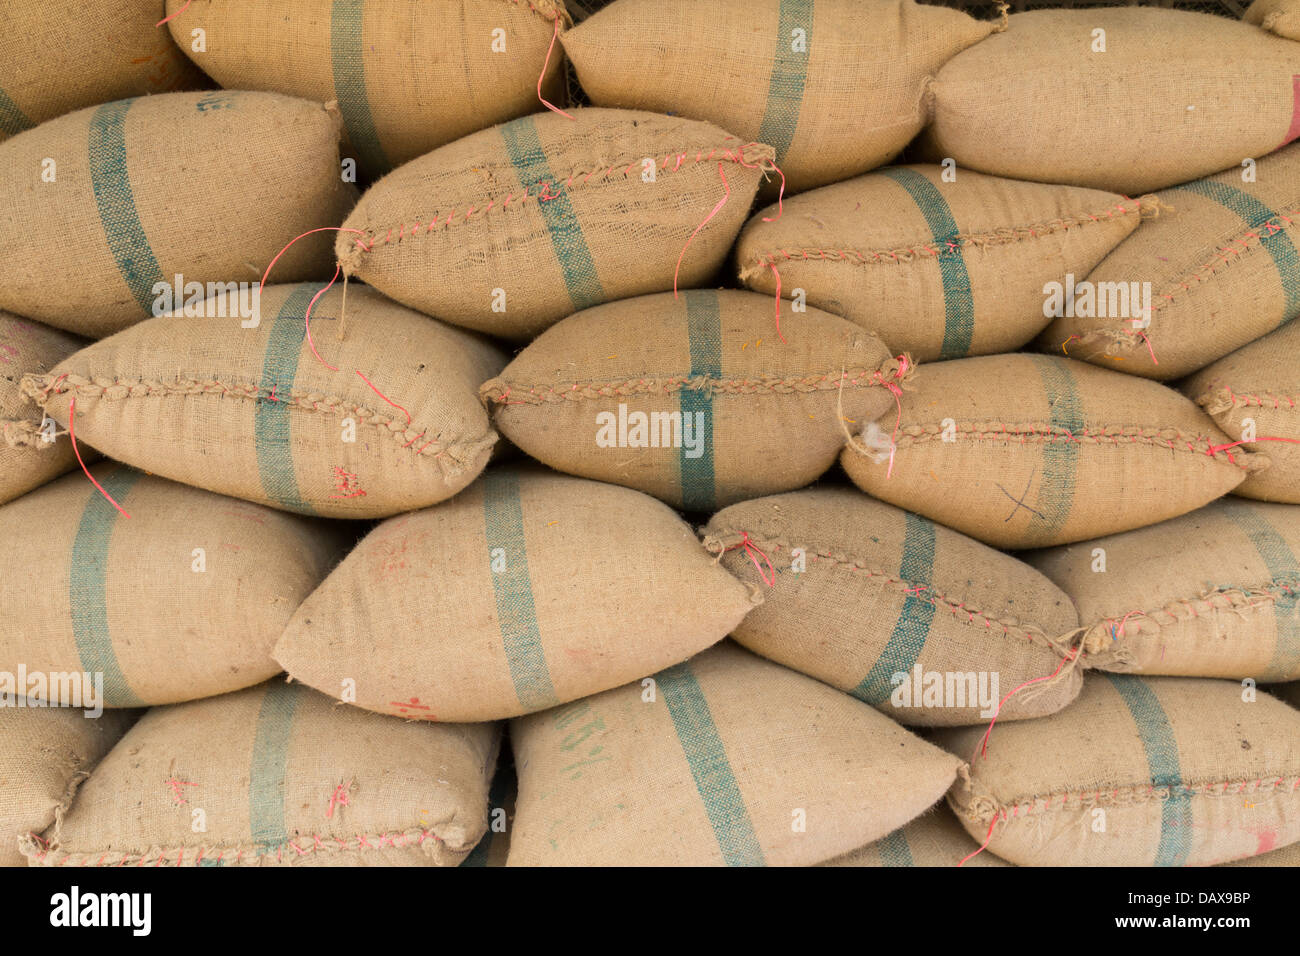 Old hemp sacks containing rice placed profoundly stacked - Stock Image